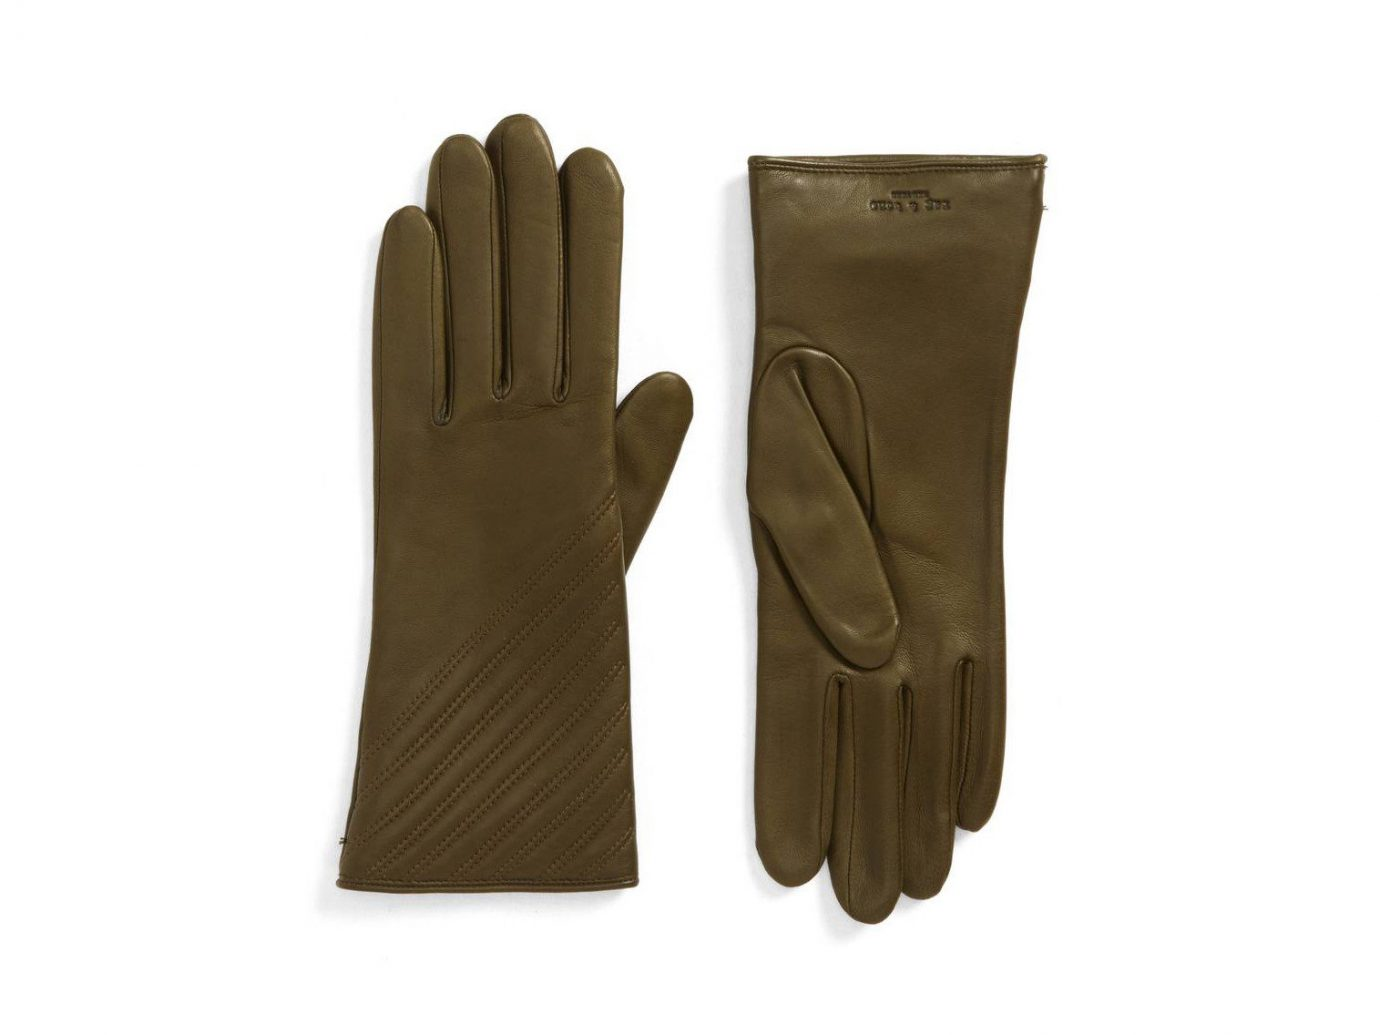 Style + Design Travel Shop handwear safety glove clothing glove bicycle glove product product design